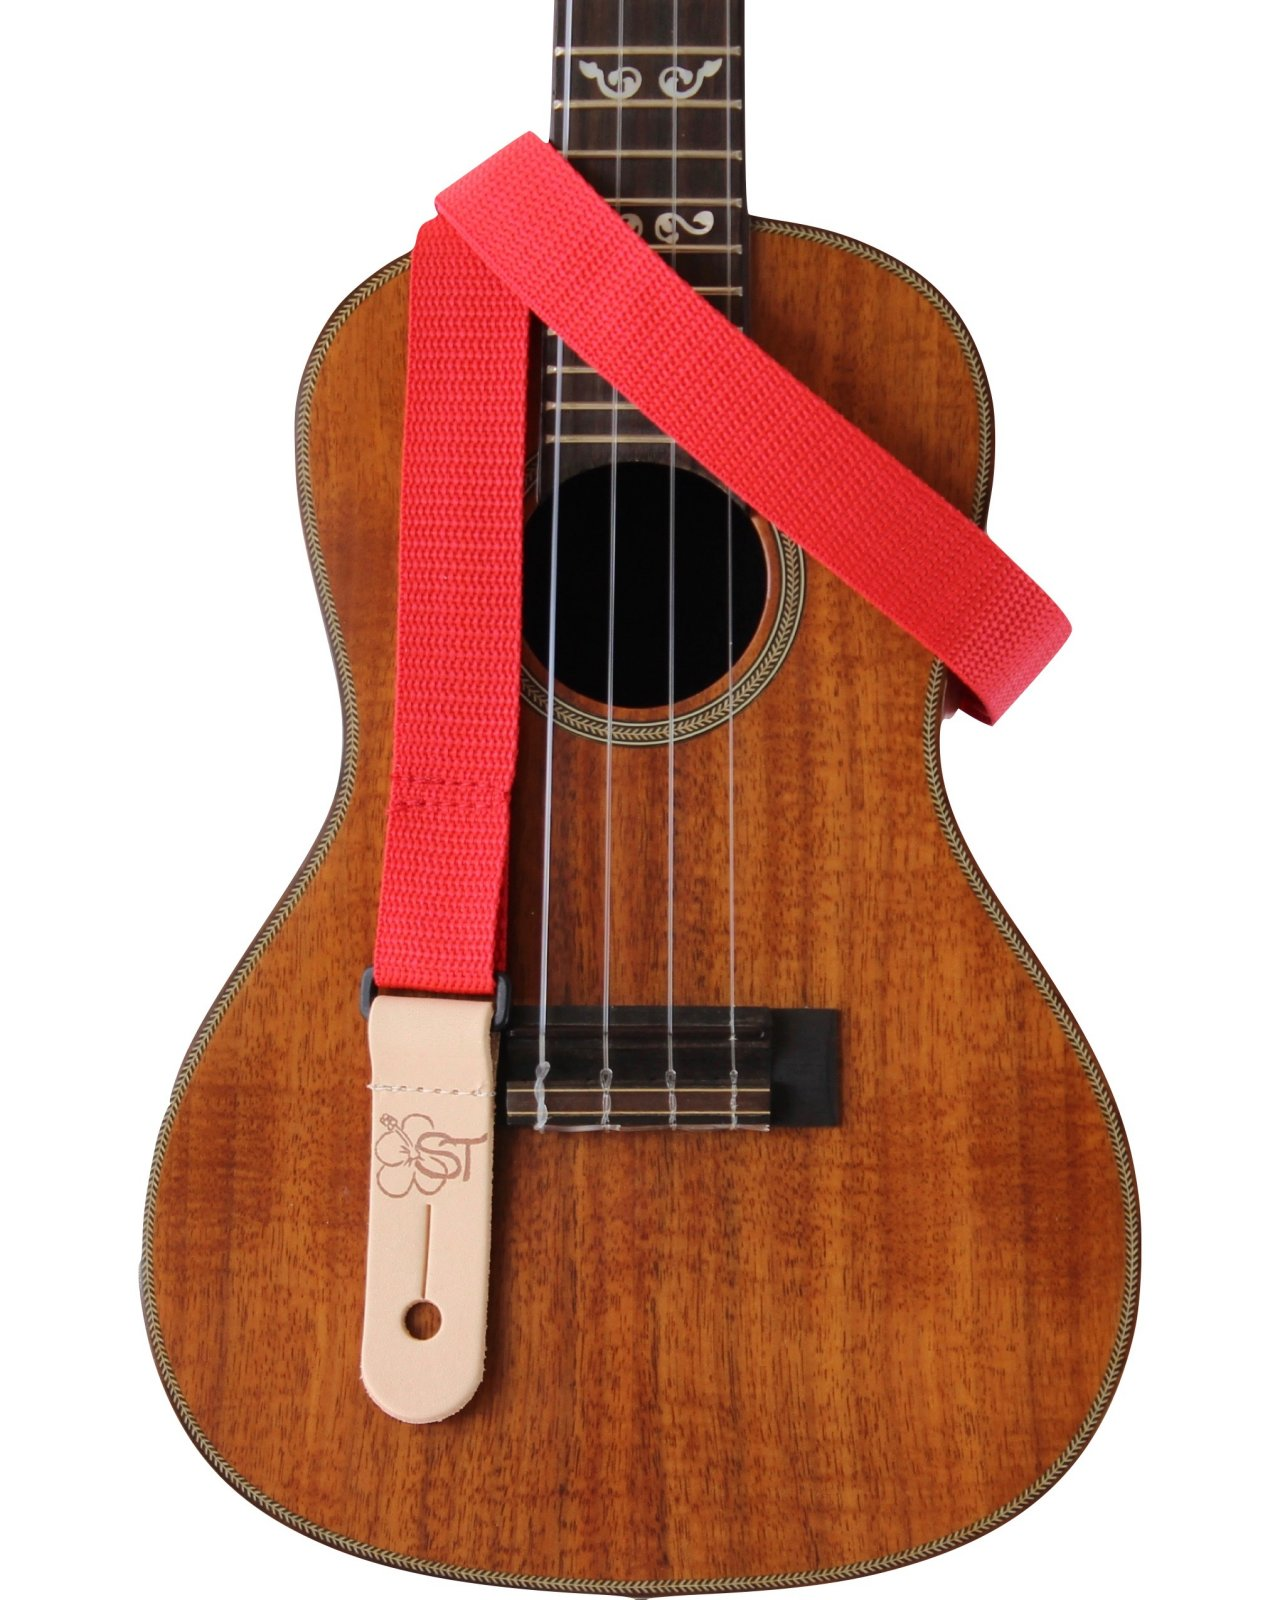 Sherrin's Threads 1 Red Ukulele Strap